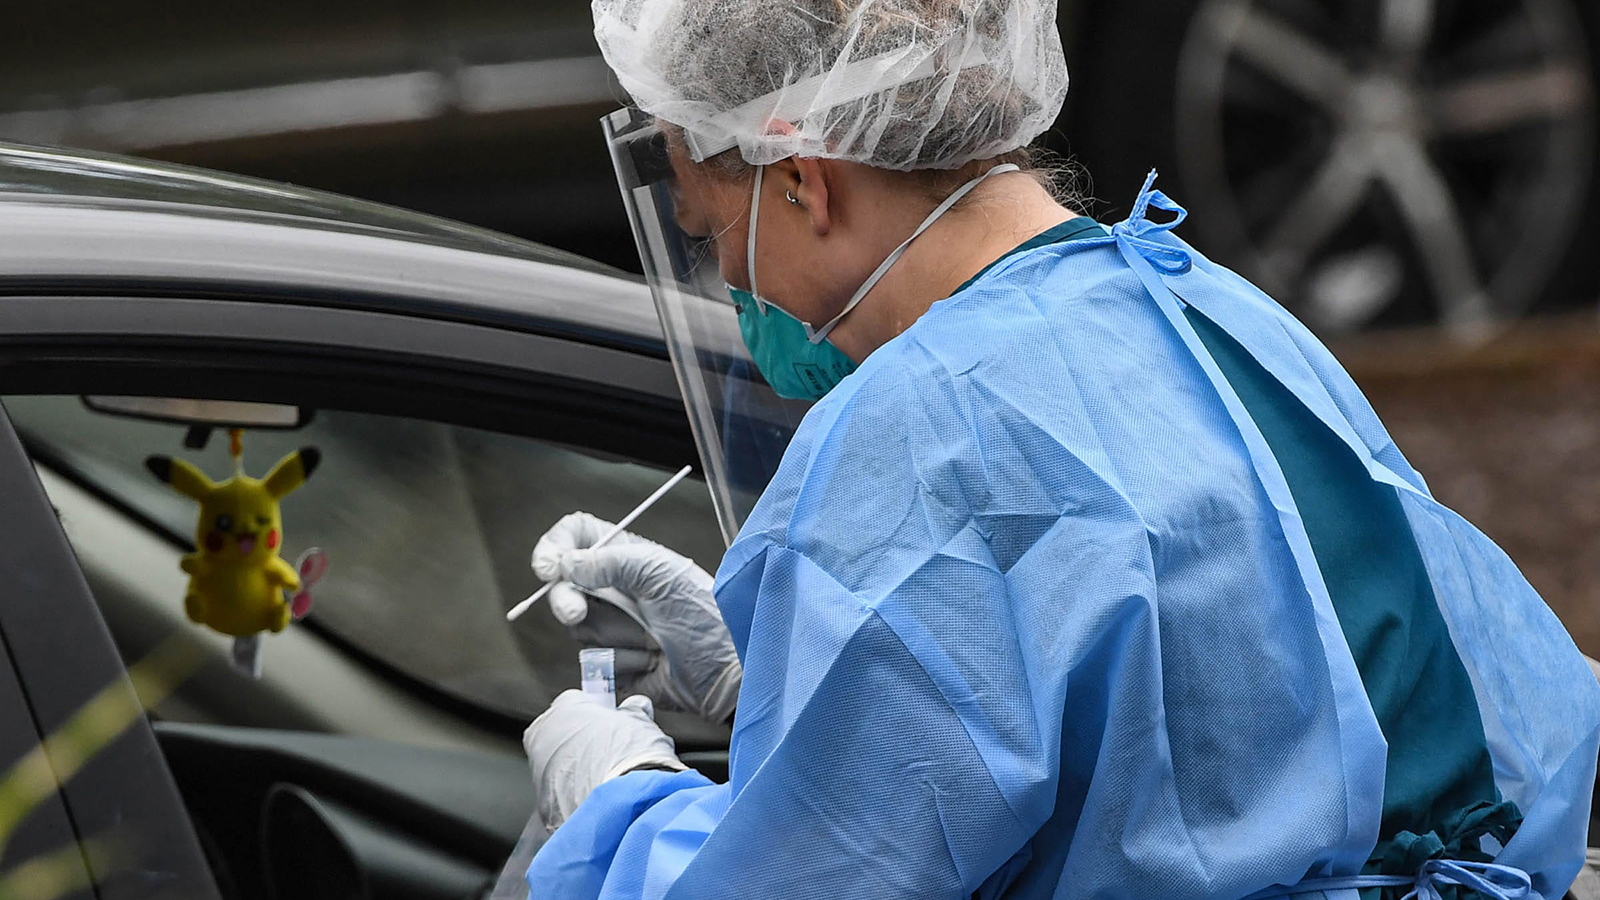 AnMed phlebotomists test people in their cars during a free COVID-19 testing at the Civic Center in Anderson South Carolina on June 18.